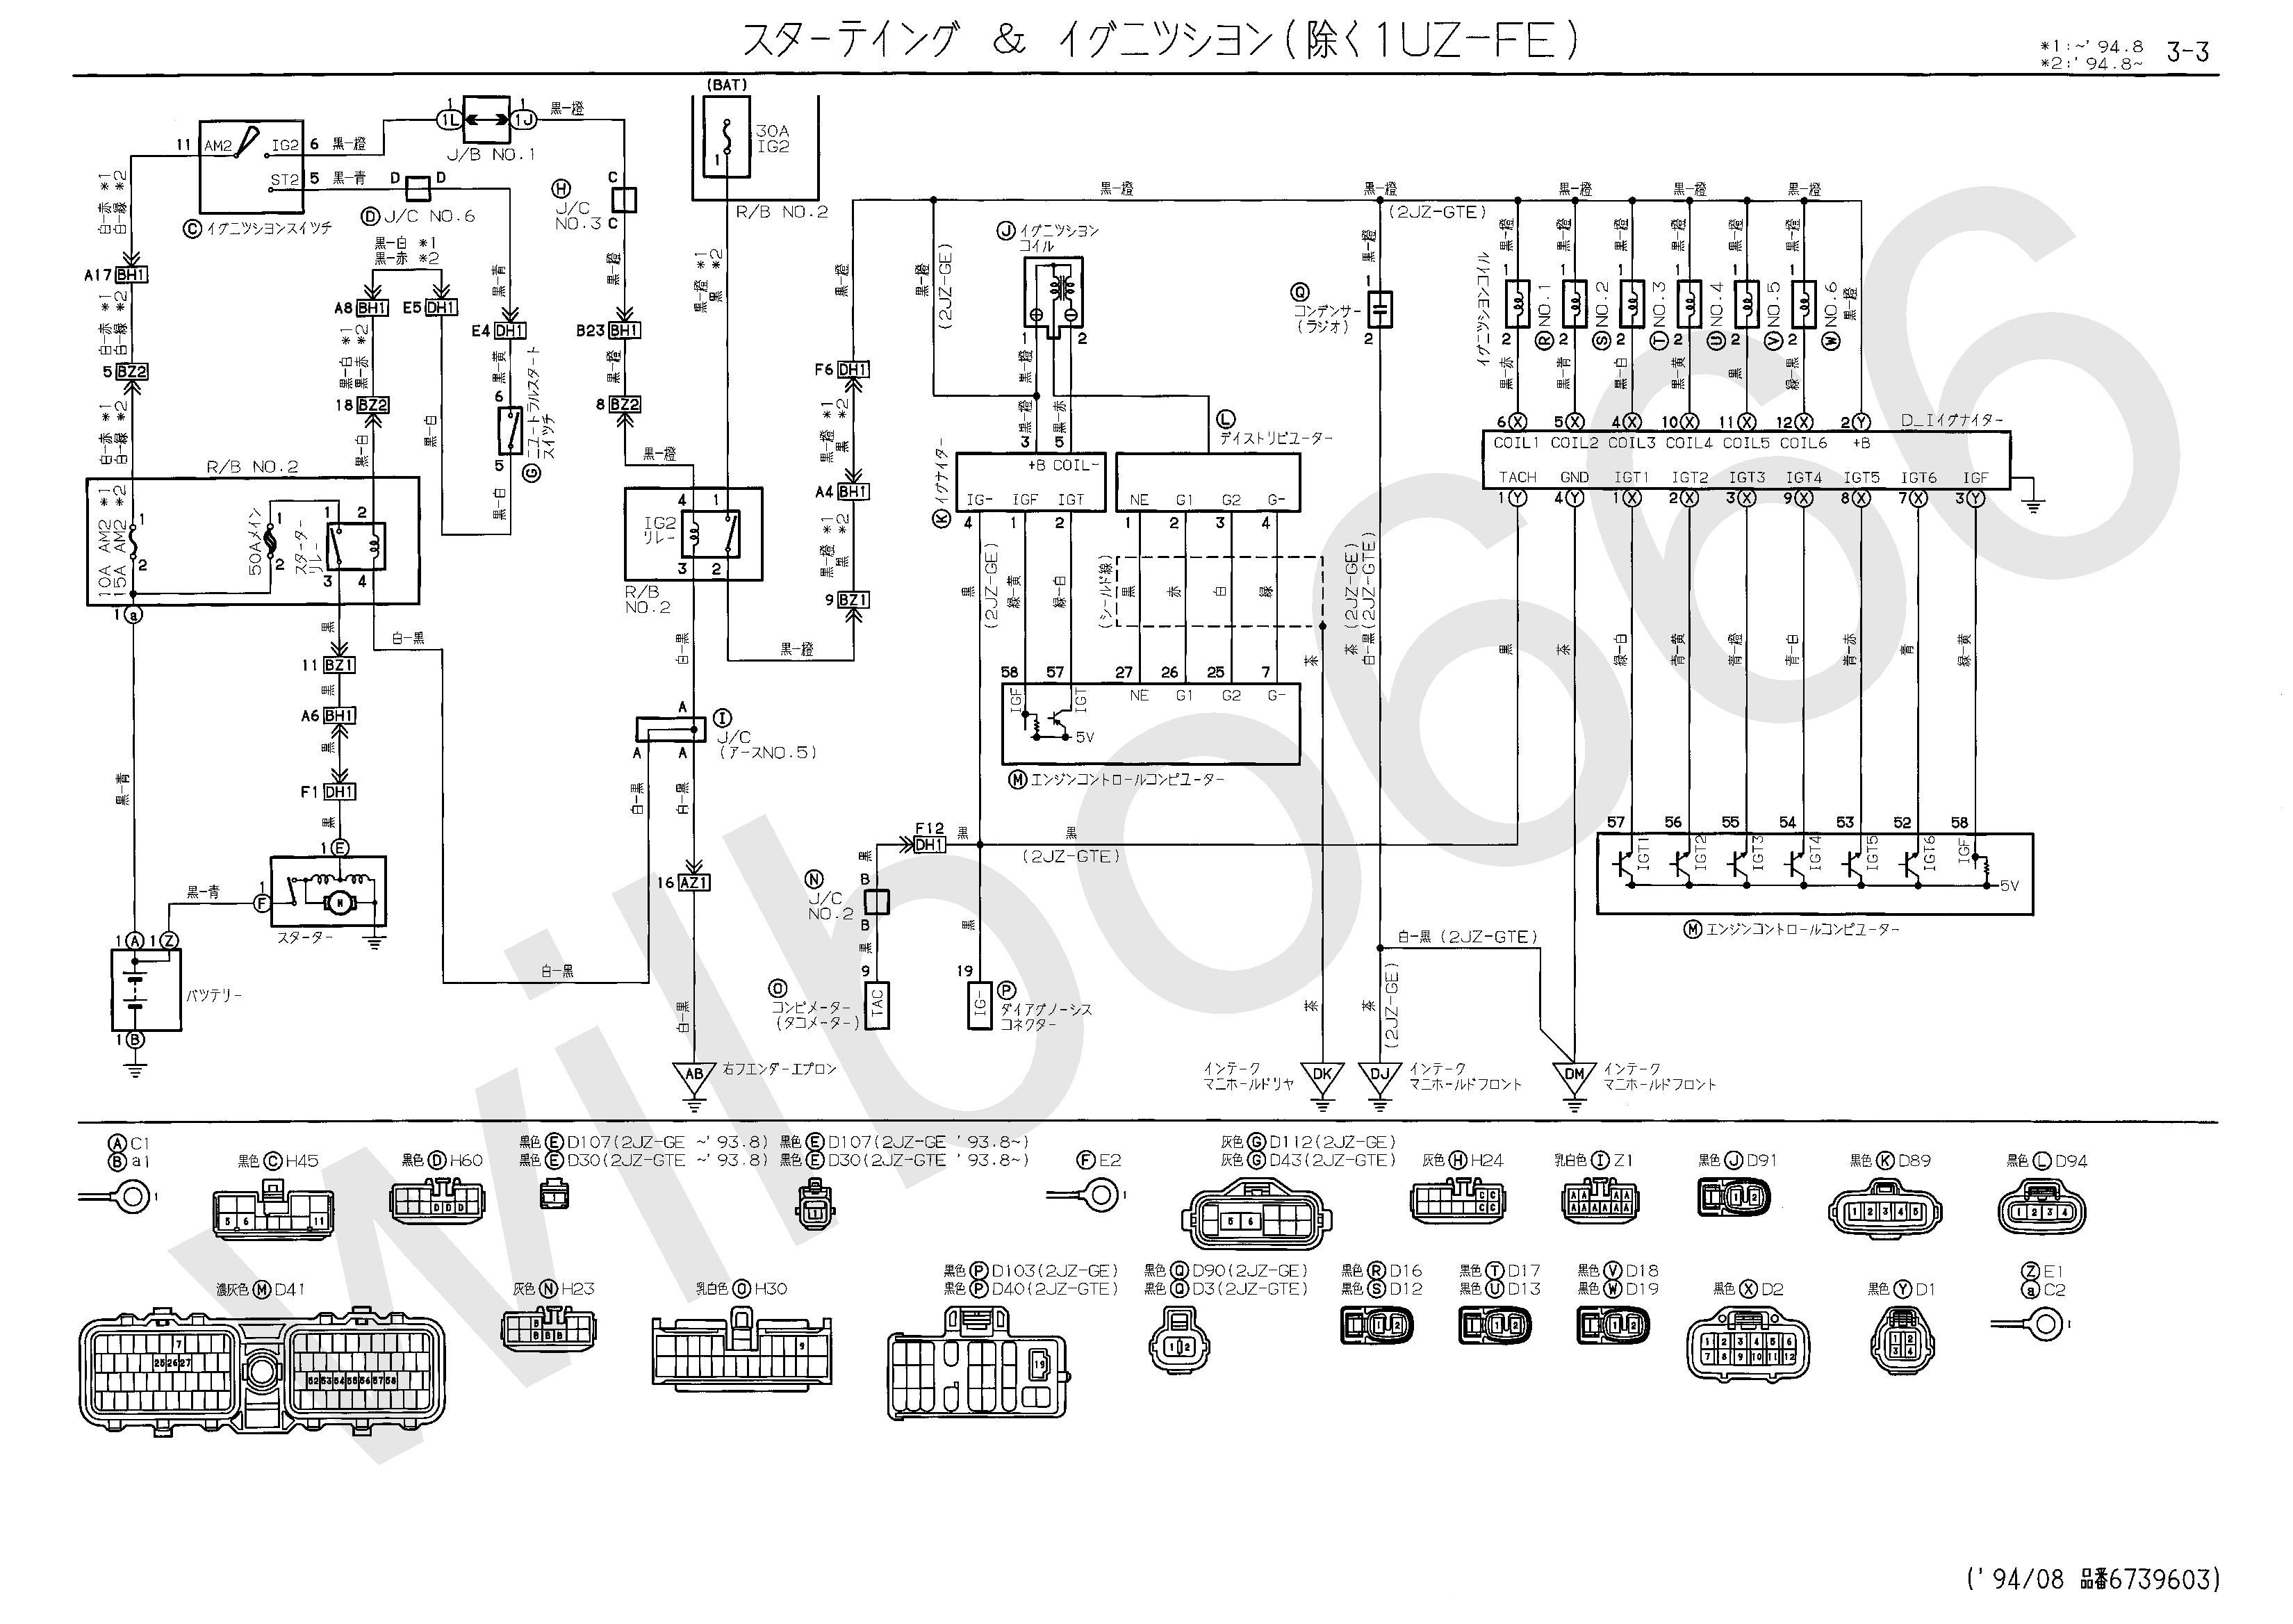 wilbo666 2jz ge jzs147 engine wiring ford electrical wiring diagrams jzs14 , uzs14 electrical wiring diagram book 6739604